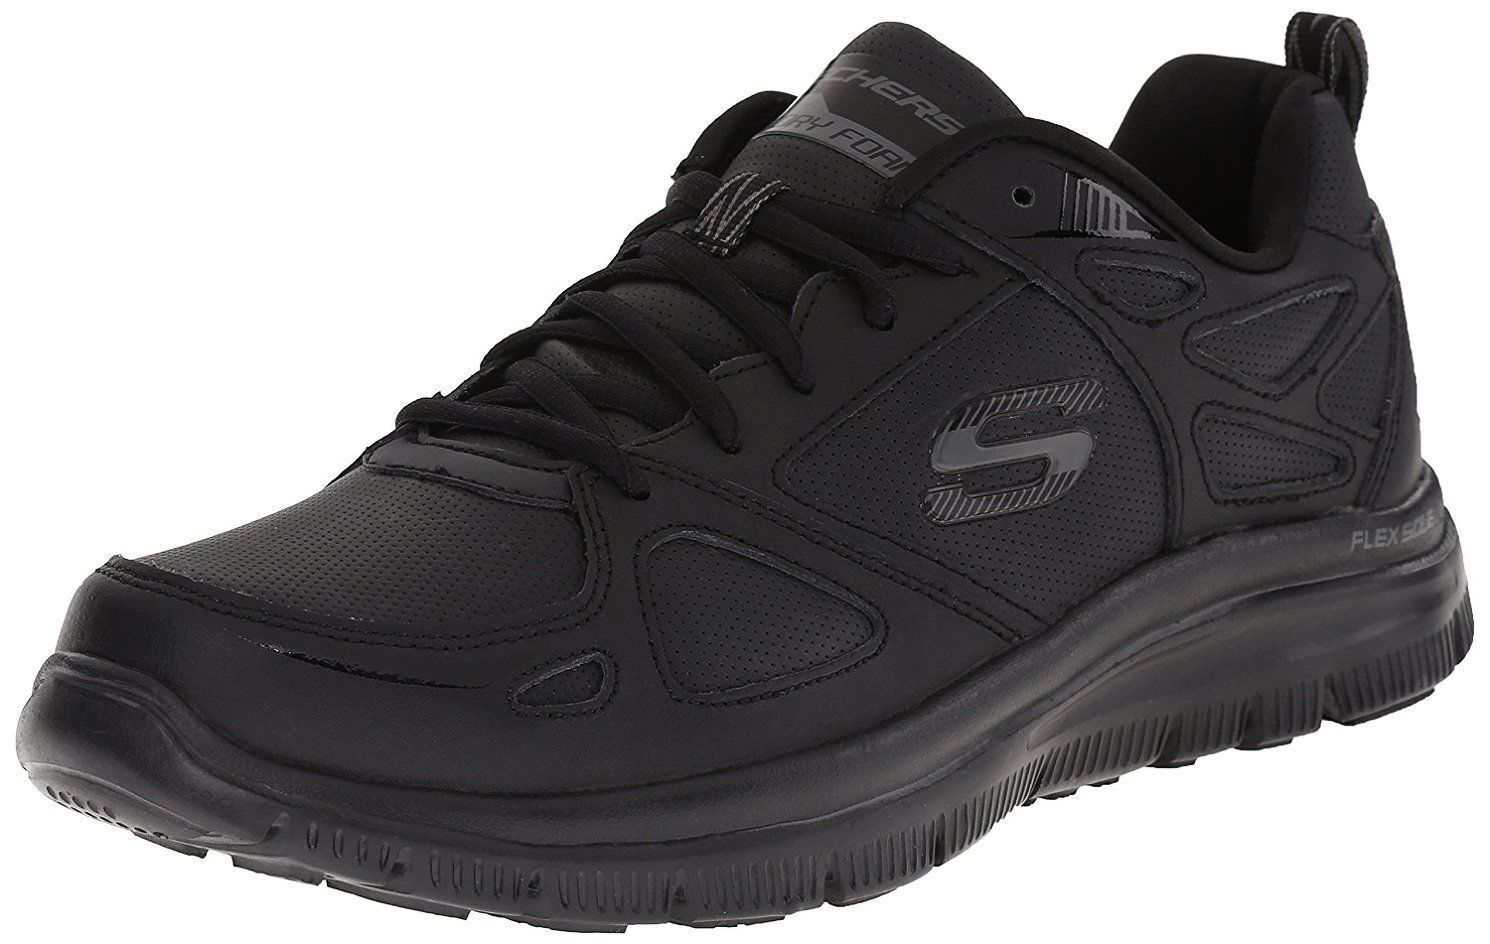 Skechers 51461 Mens Flex Advantage Even Strength Athletic Shoes Black Comfortable and good-looking